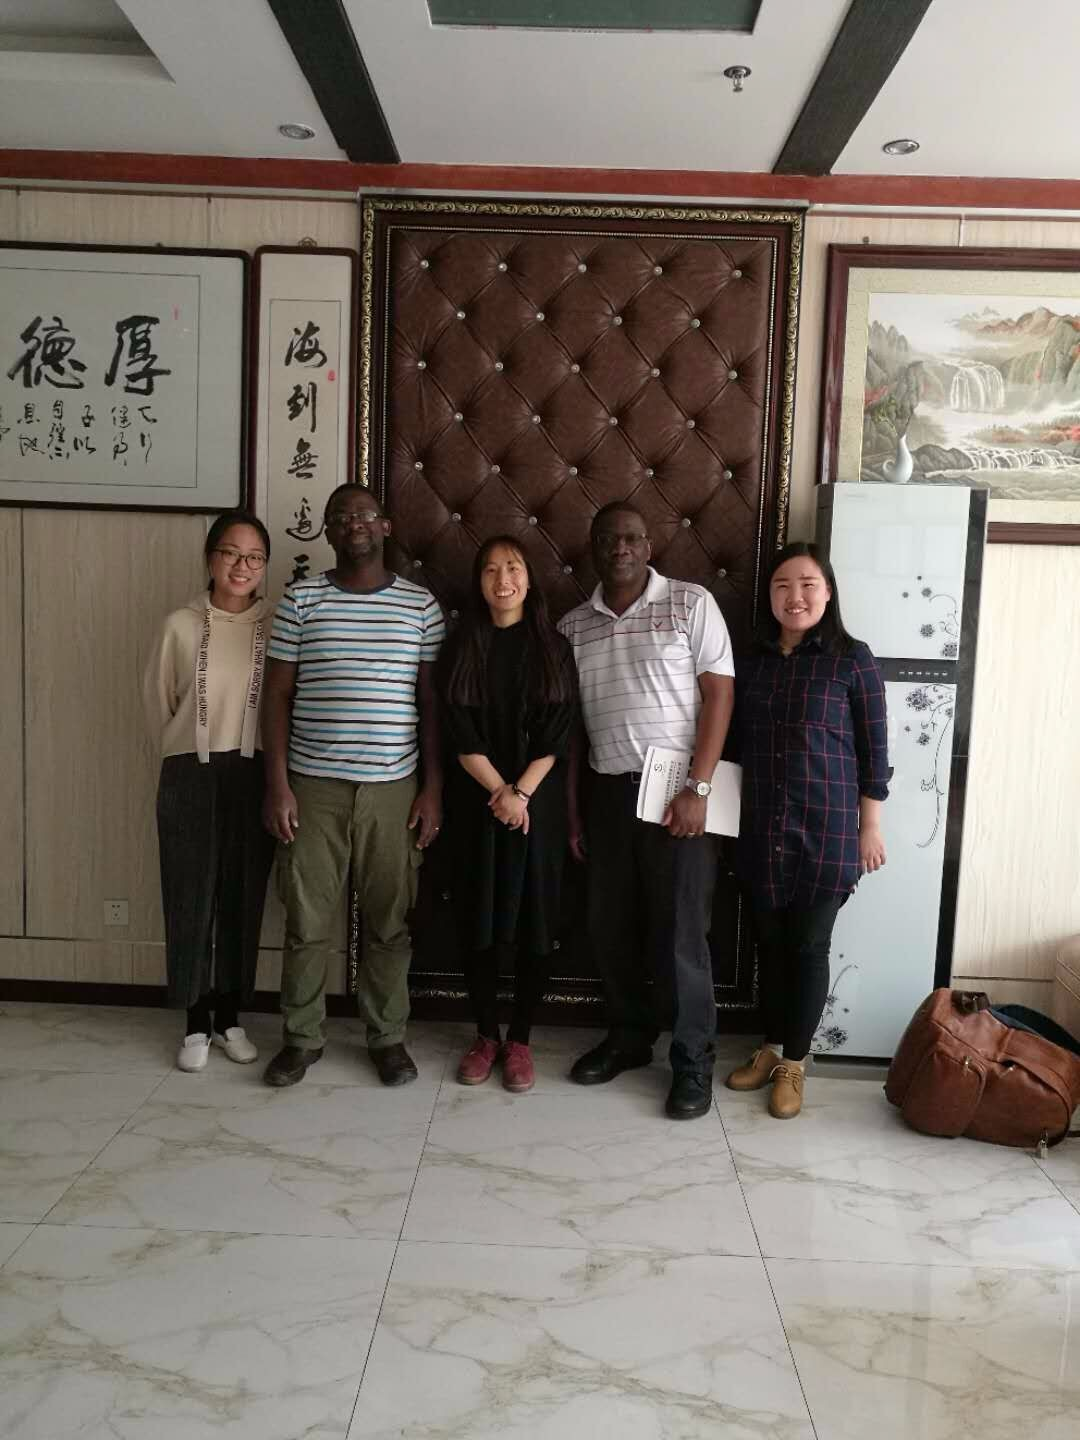 Customer from Uganda came to China to visit our company